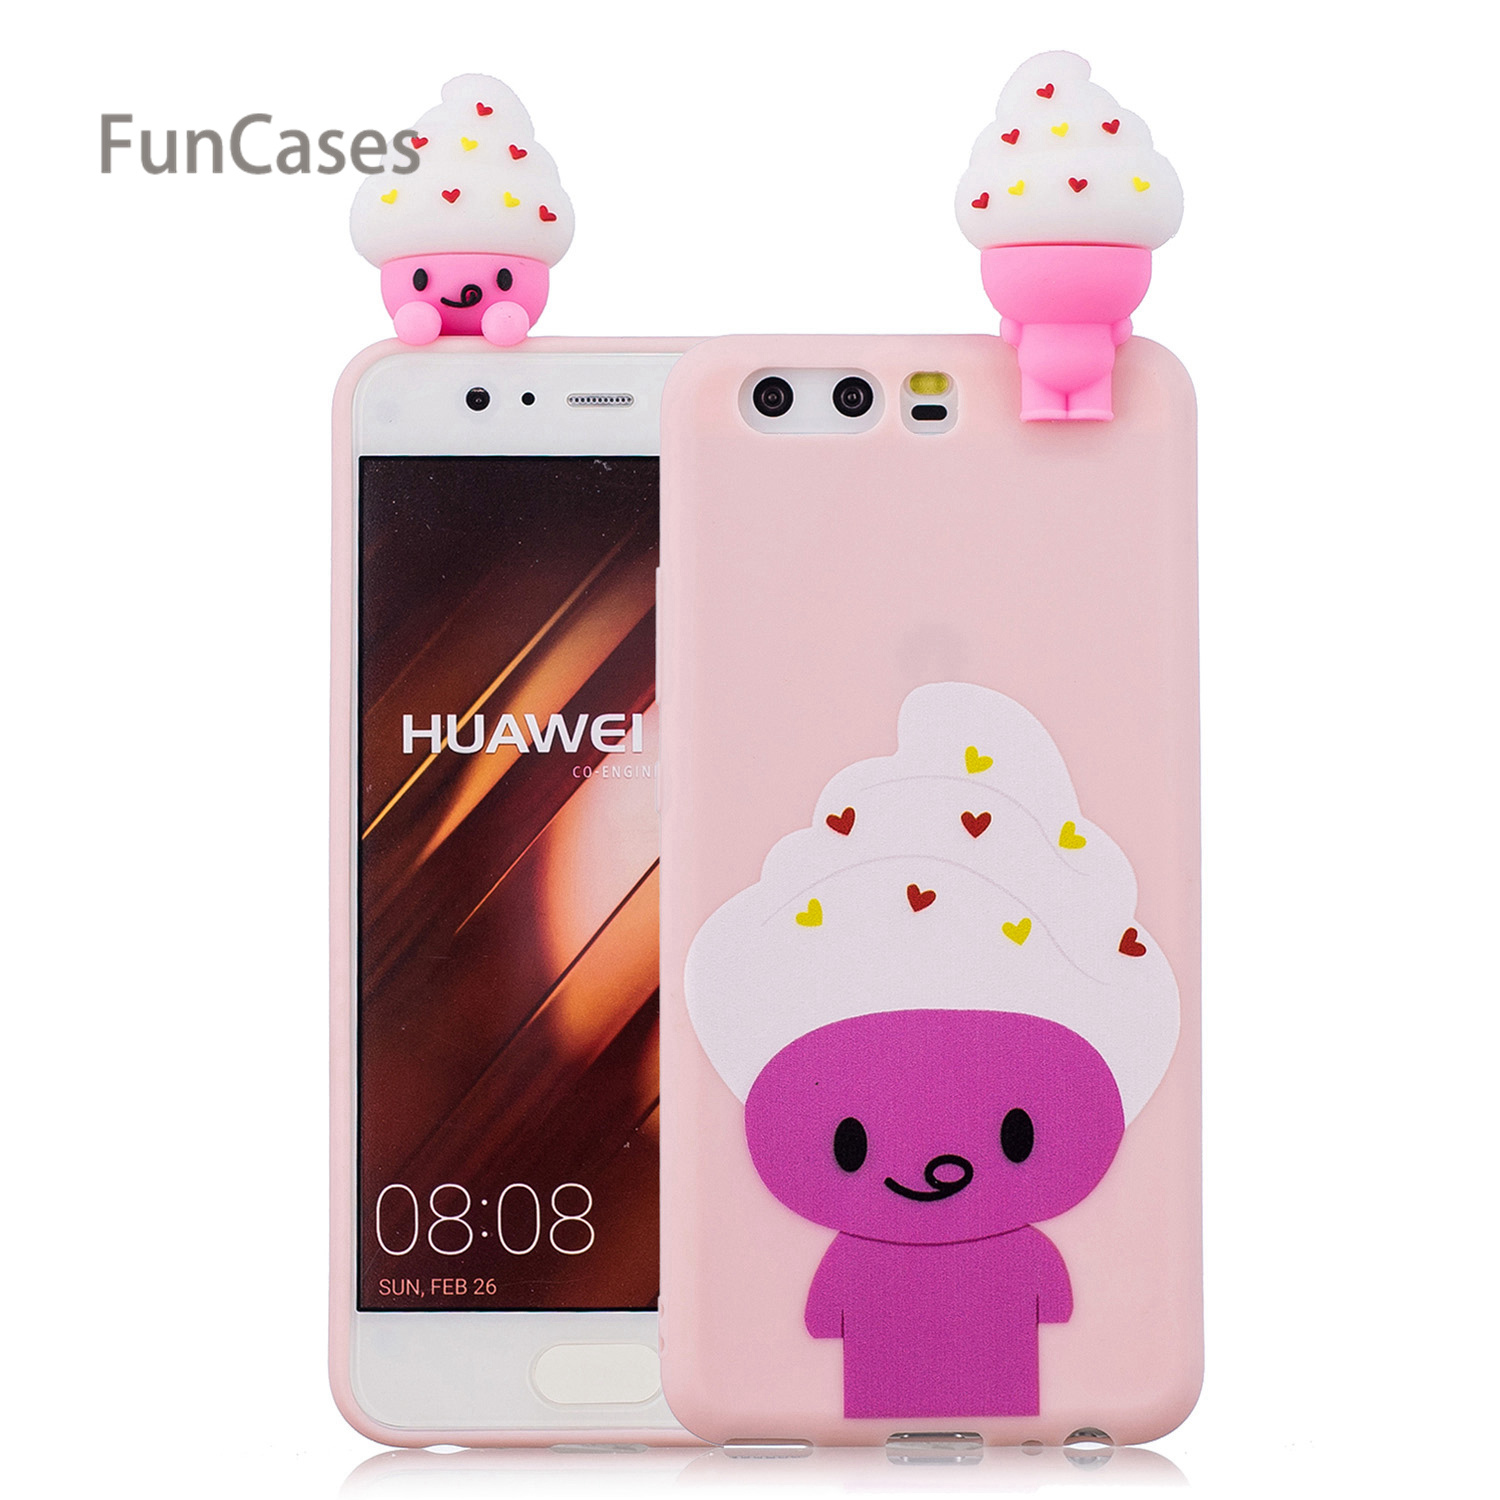 3D Owl <font><b>Phone</b></font> <font><b>Case</b></font> sFor Etui Huawei P10 Soft TPU Back Cover Carcasa Quotes Messages Telefon Aksesuar <font><b>Case</b></font> For Huawei Ascend P10